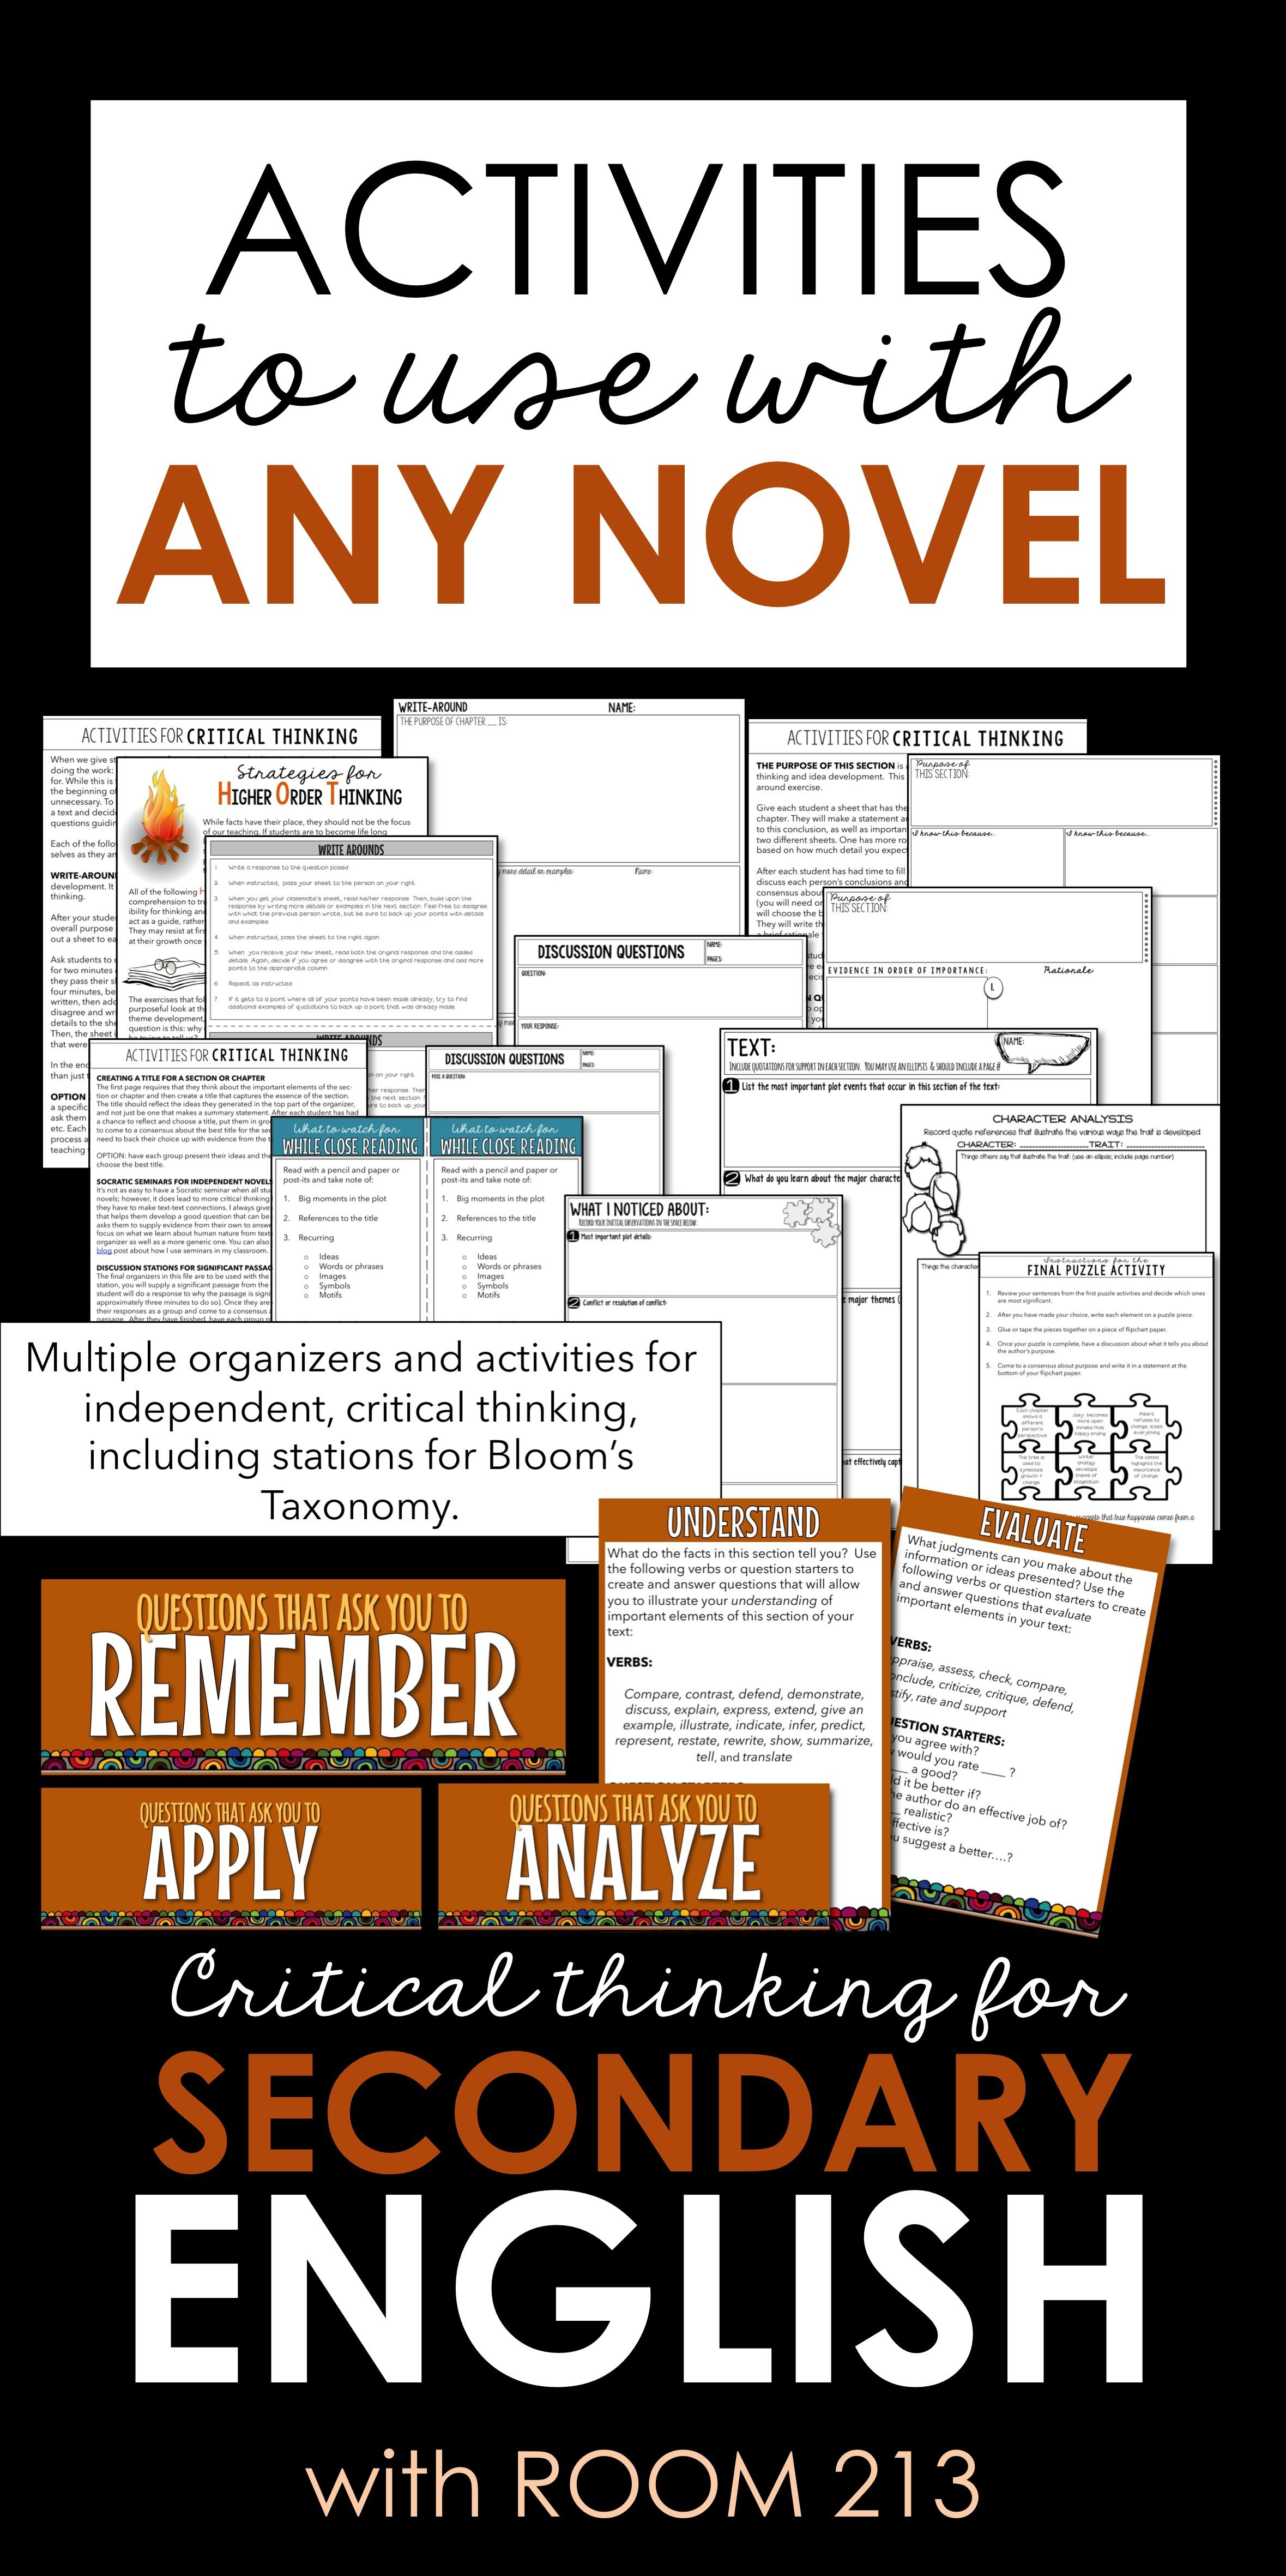 Higher Order Thinking Activities That Can Be Used With Any